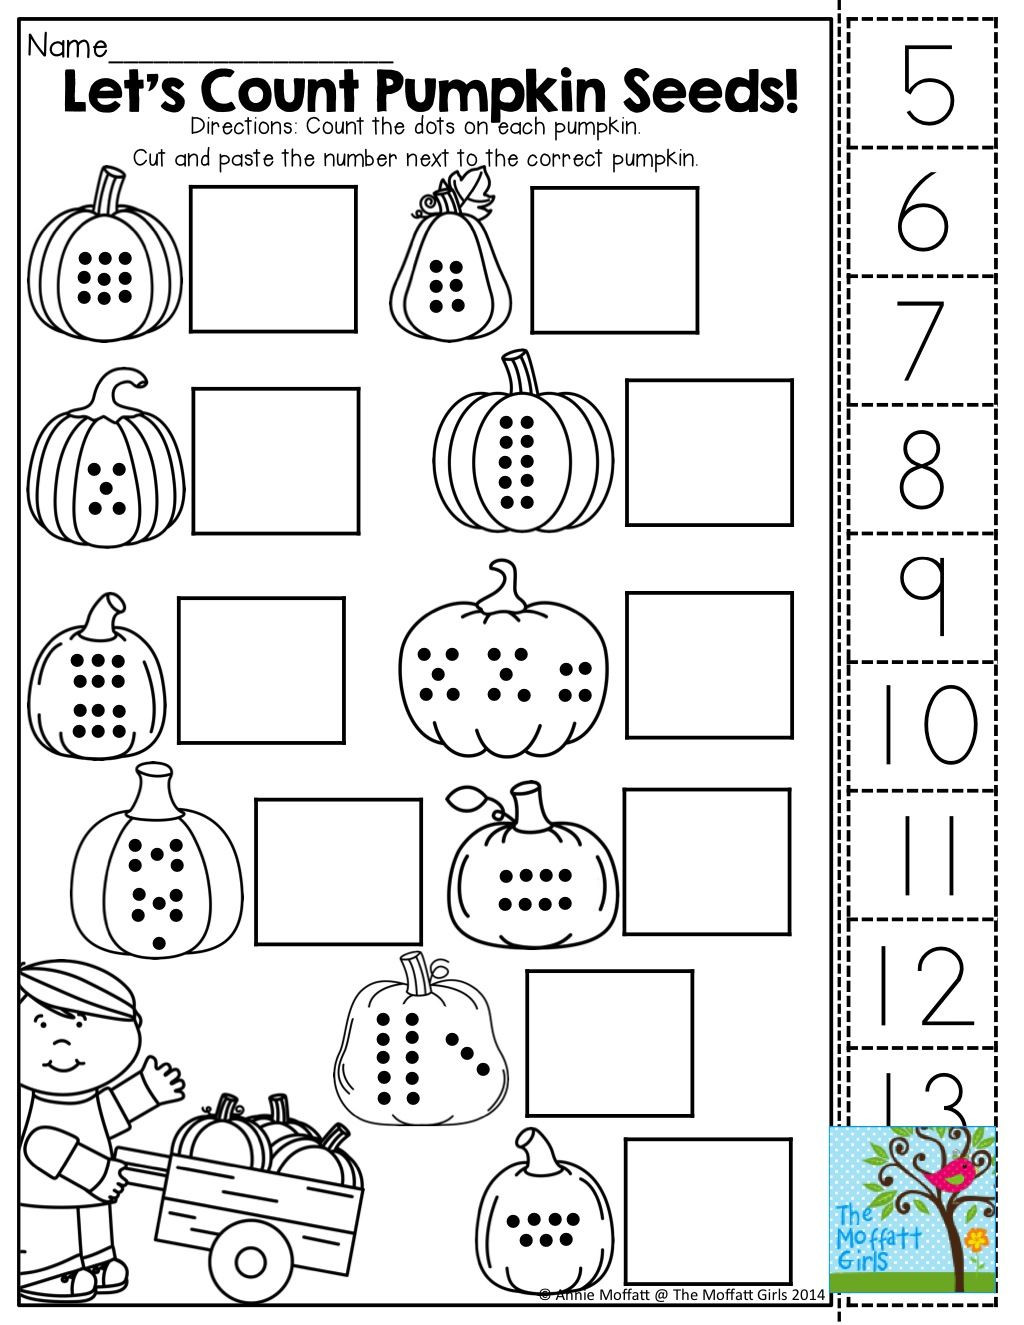 Printable Cut and Paste Worksheets October Fun Filled Learning Resources